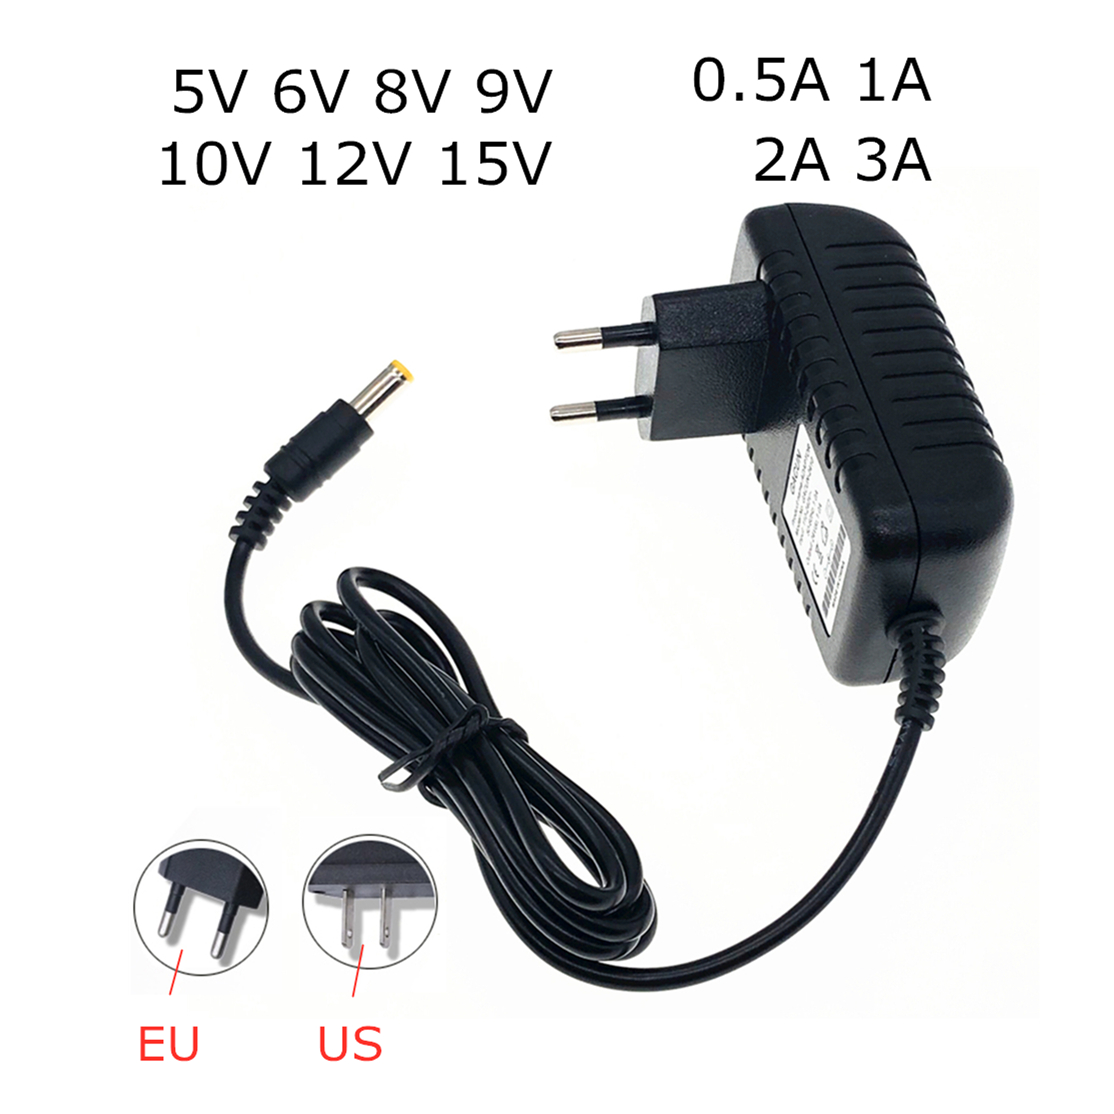 AC 110-240V <font><b>DC</b></font> 5V 6V <font><b>8V</b></font> 9V 10V <font><b>12V</b></font> 15V 0.5 1A 2A 3A Universal Power Adapter Supply Charger adapter for LED light strips Eu Us image